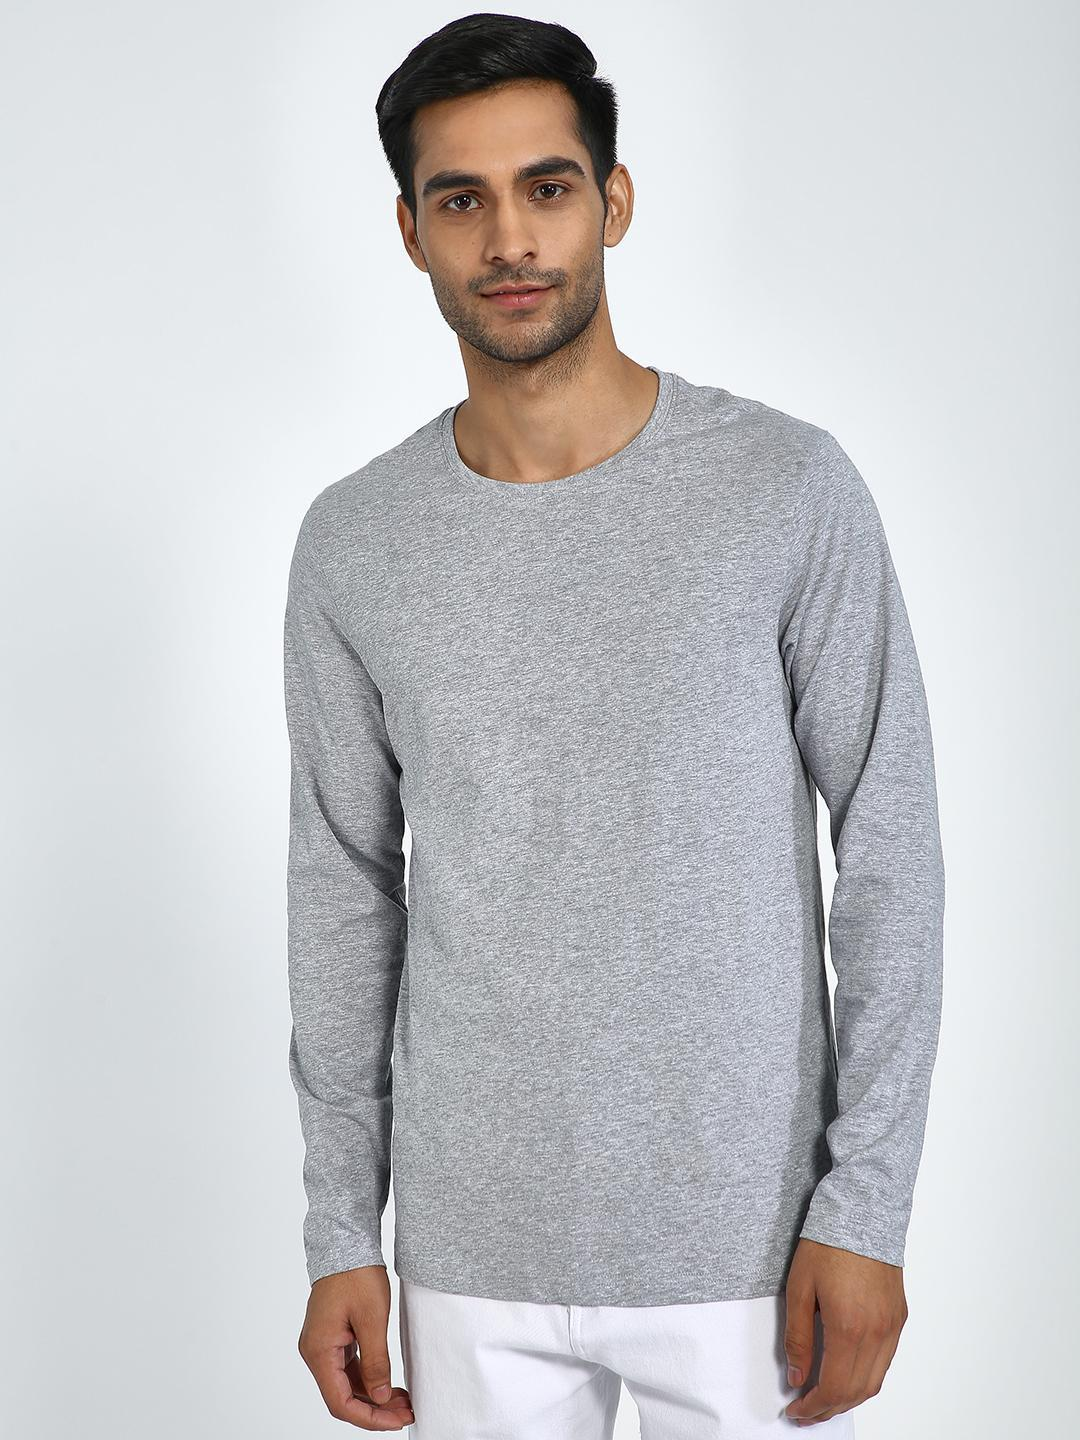 Blue Saint Grey Textured Crew Neck Long Sleeve T-Shirt 1